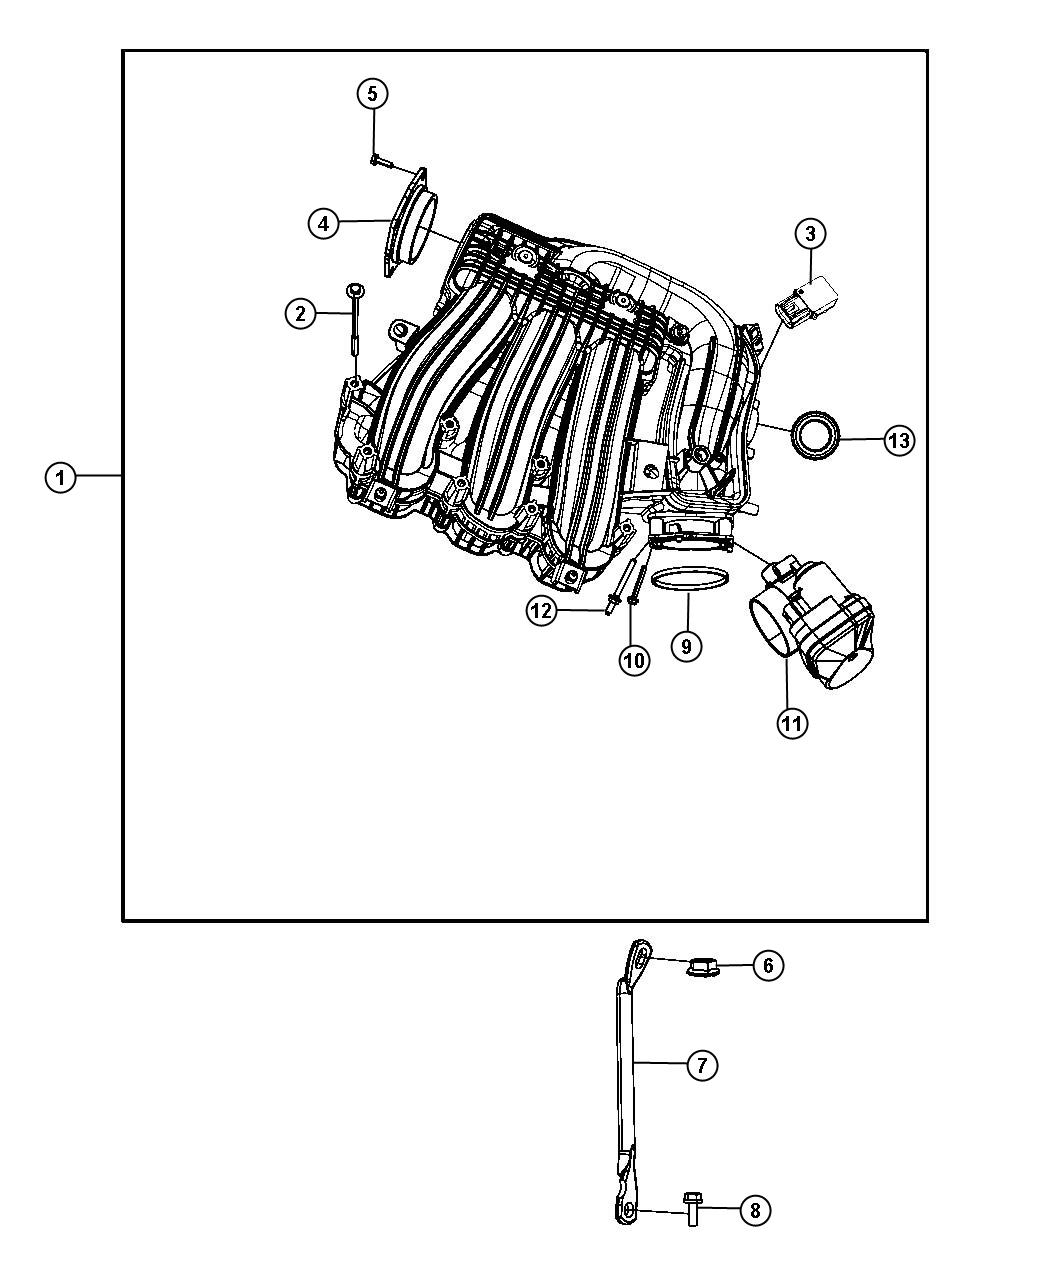 chevy 2010 hhr fuel filter location  chevy  auto wiring